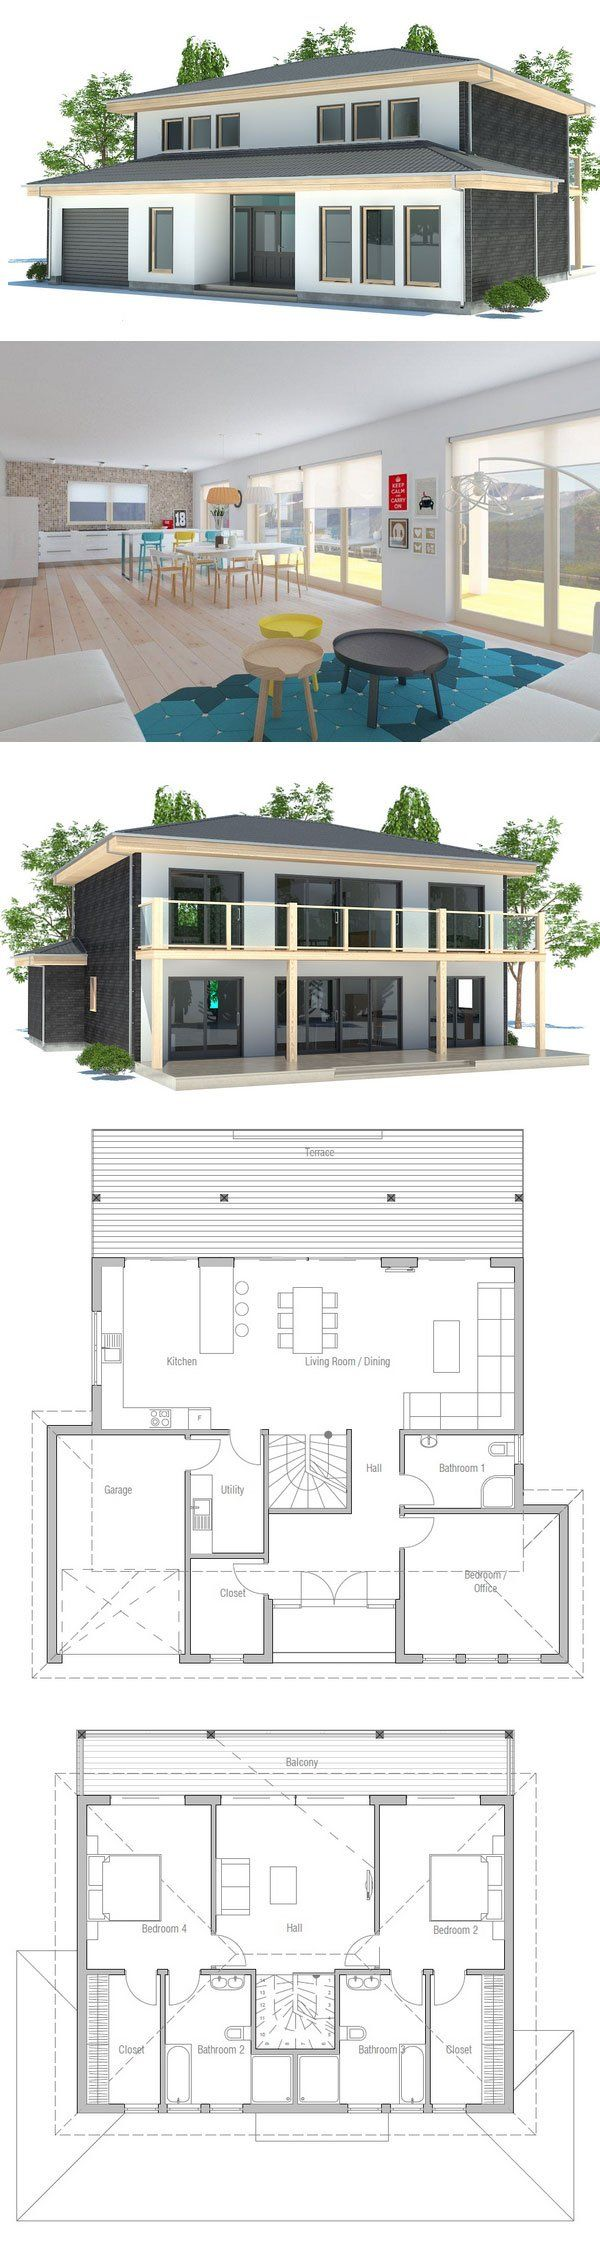 best 25 small modern houses ideas on pinterest small modern best 25 small modern houses ideas on pinterest small modern home small modern house plans and modern house design